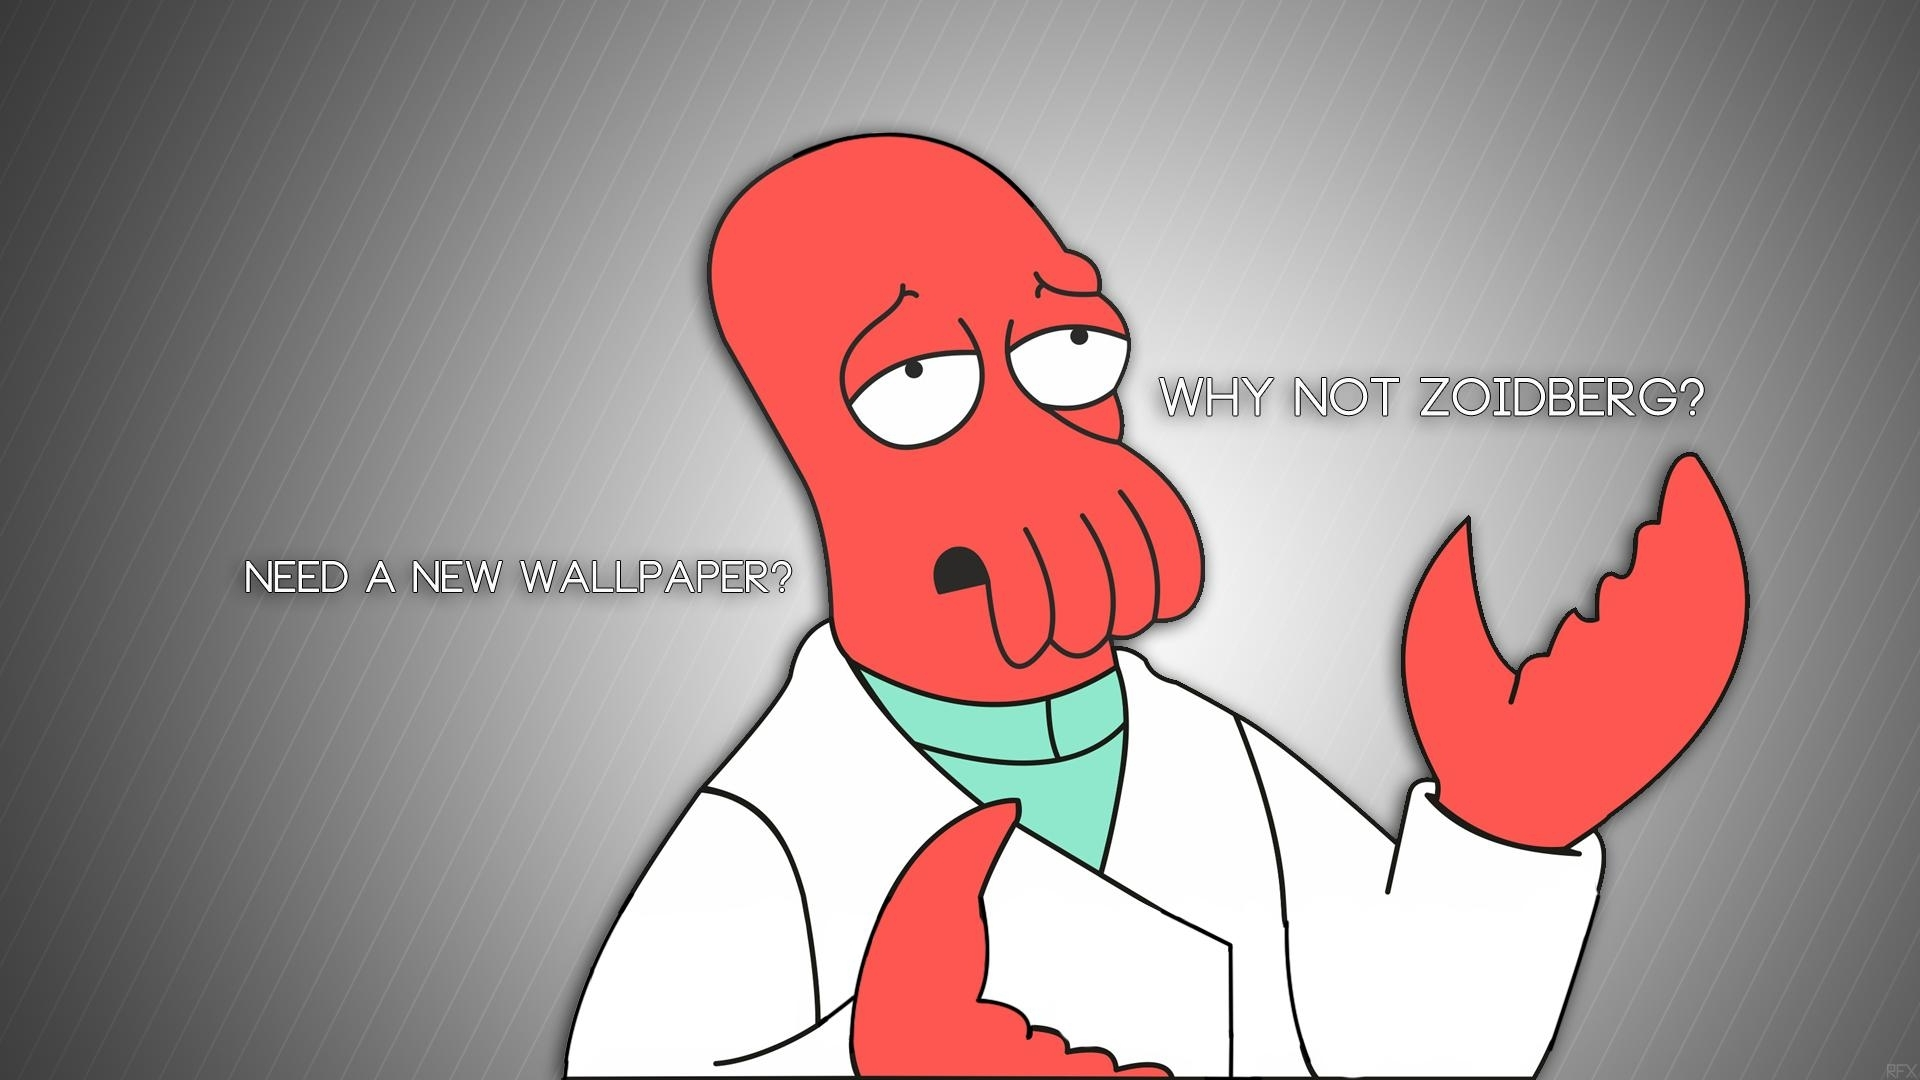 zoidberg wallpapers - wallpaper cave